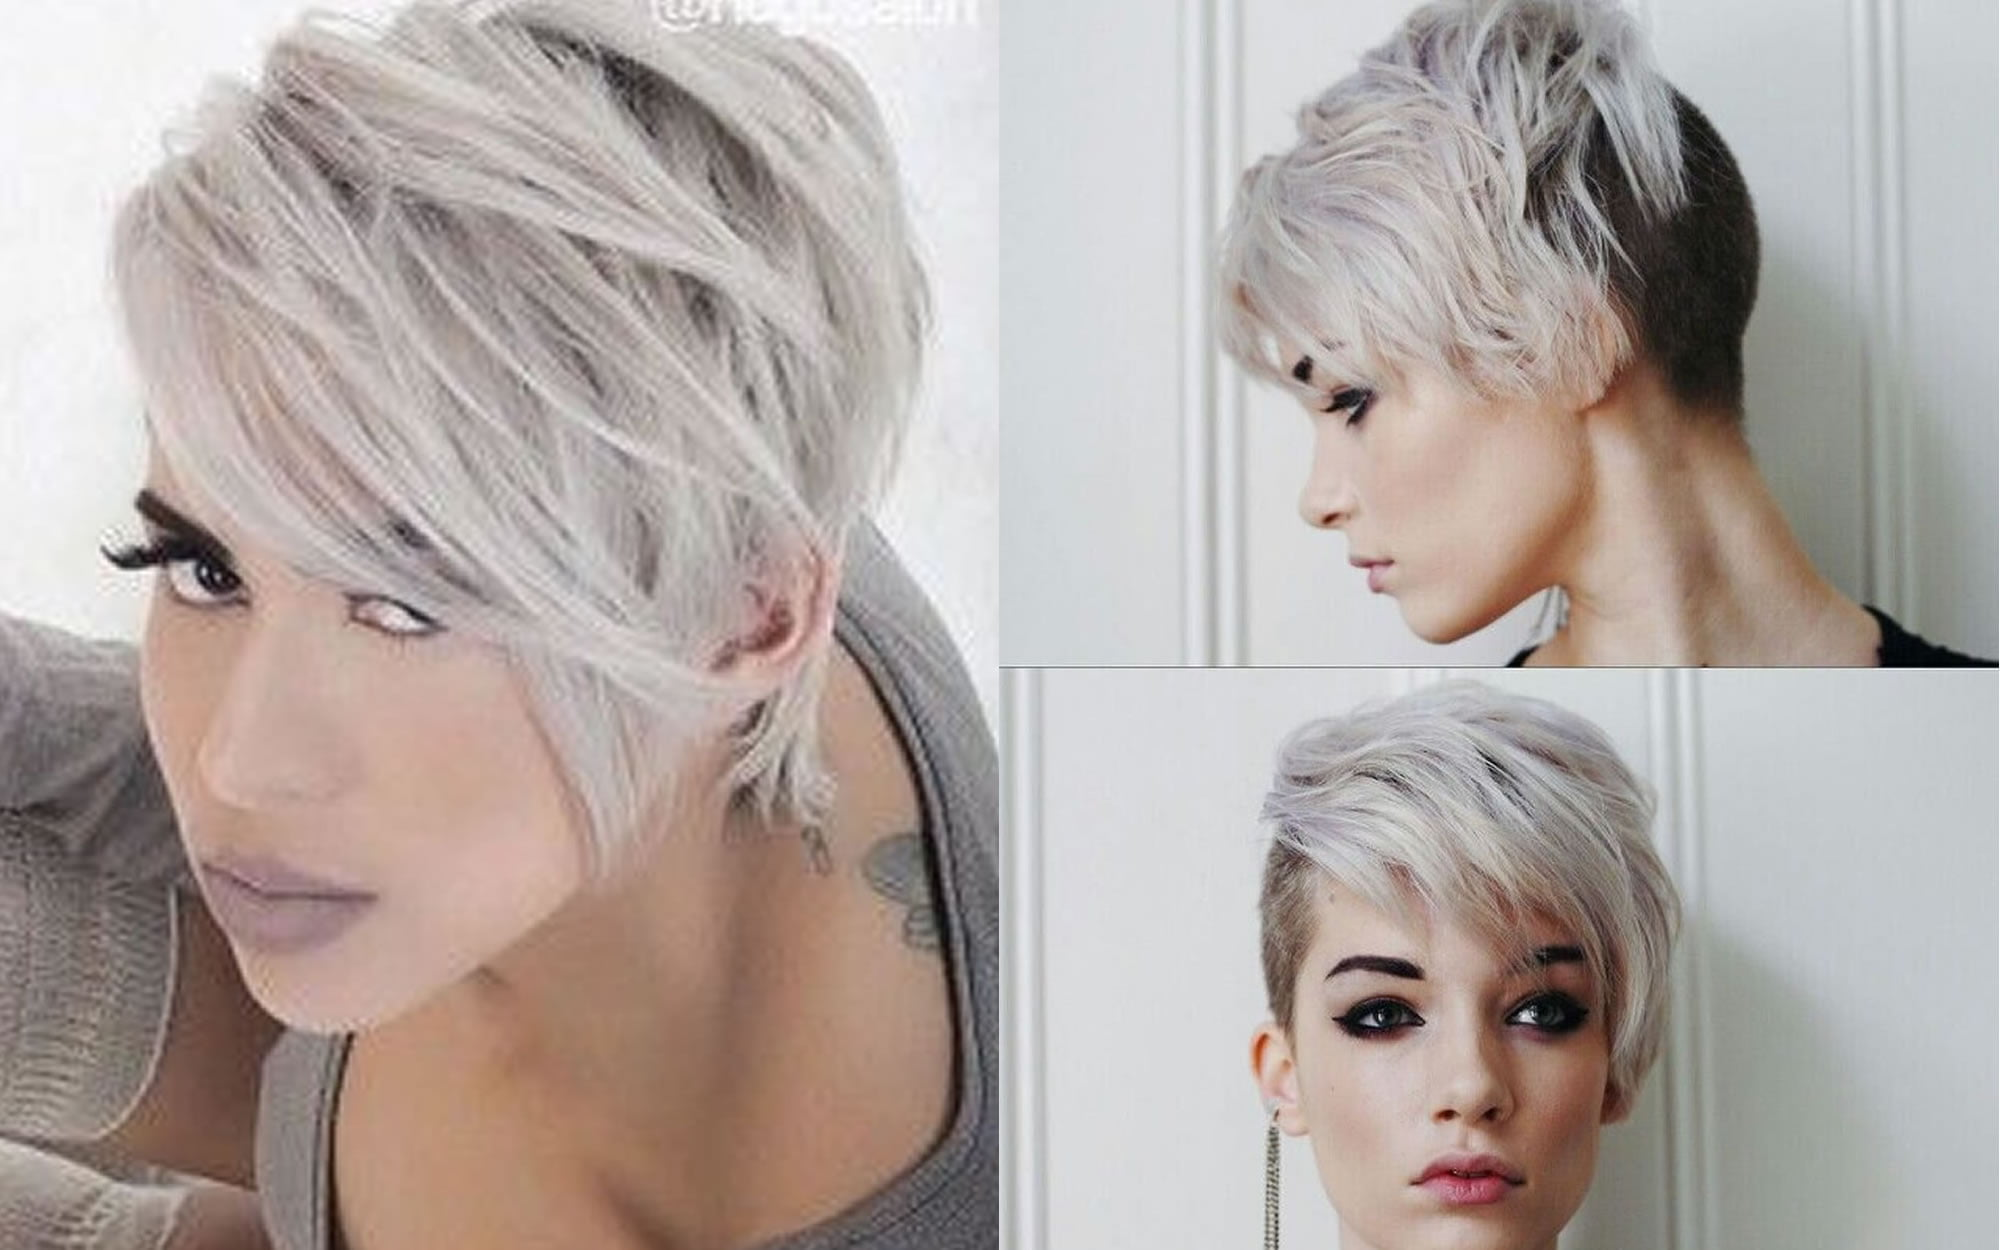 changing hair style silver haircuts 2017 haircuts models ideas 2019